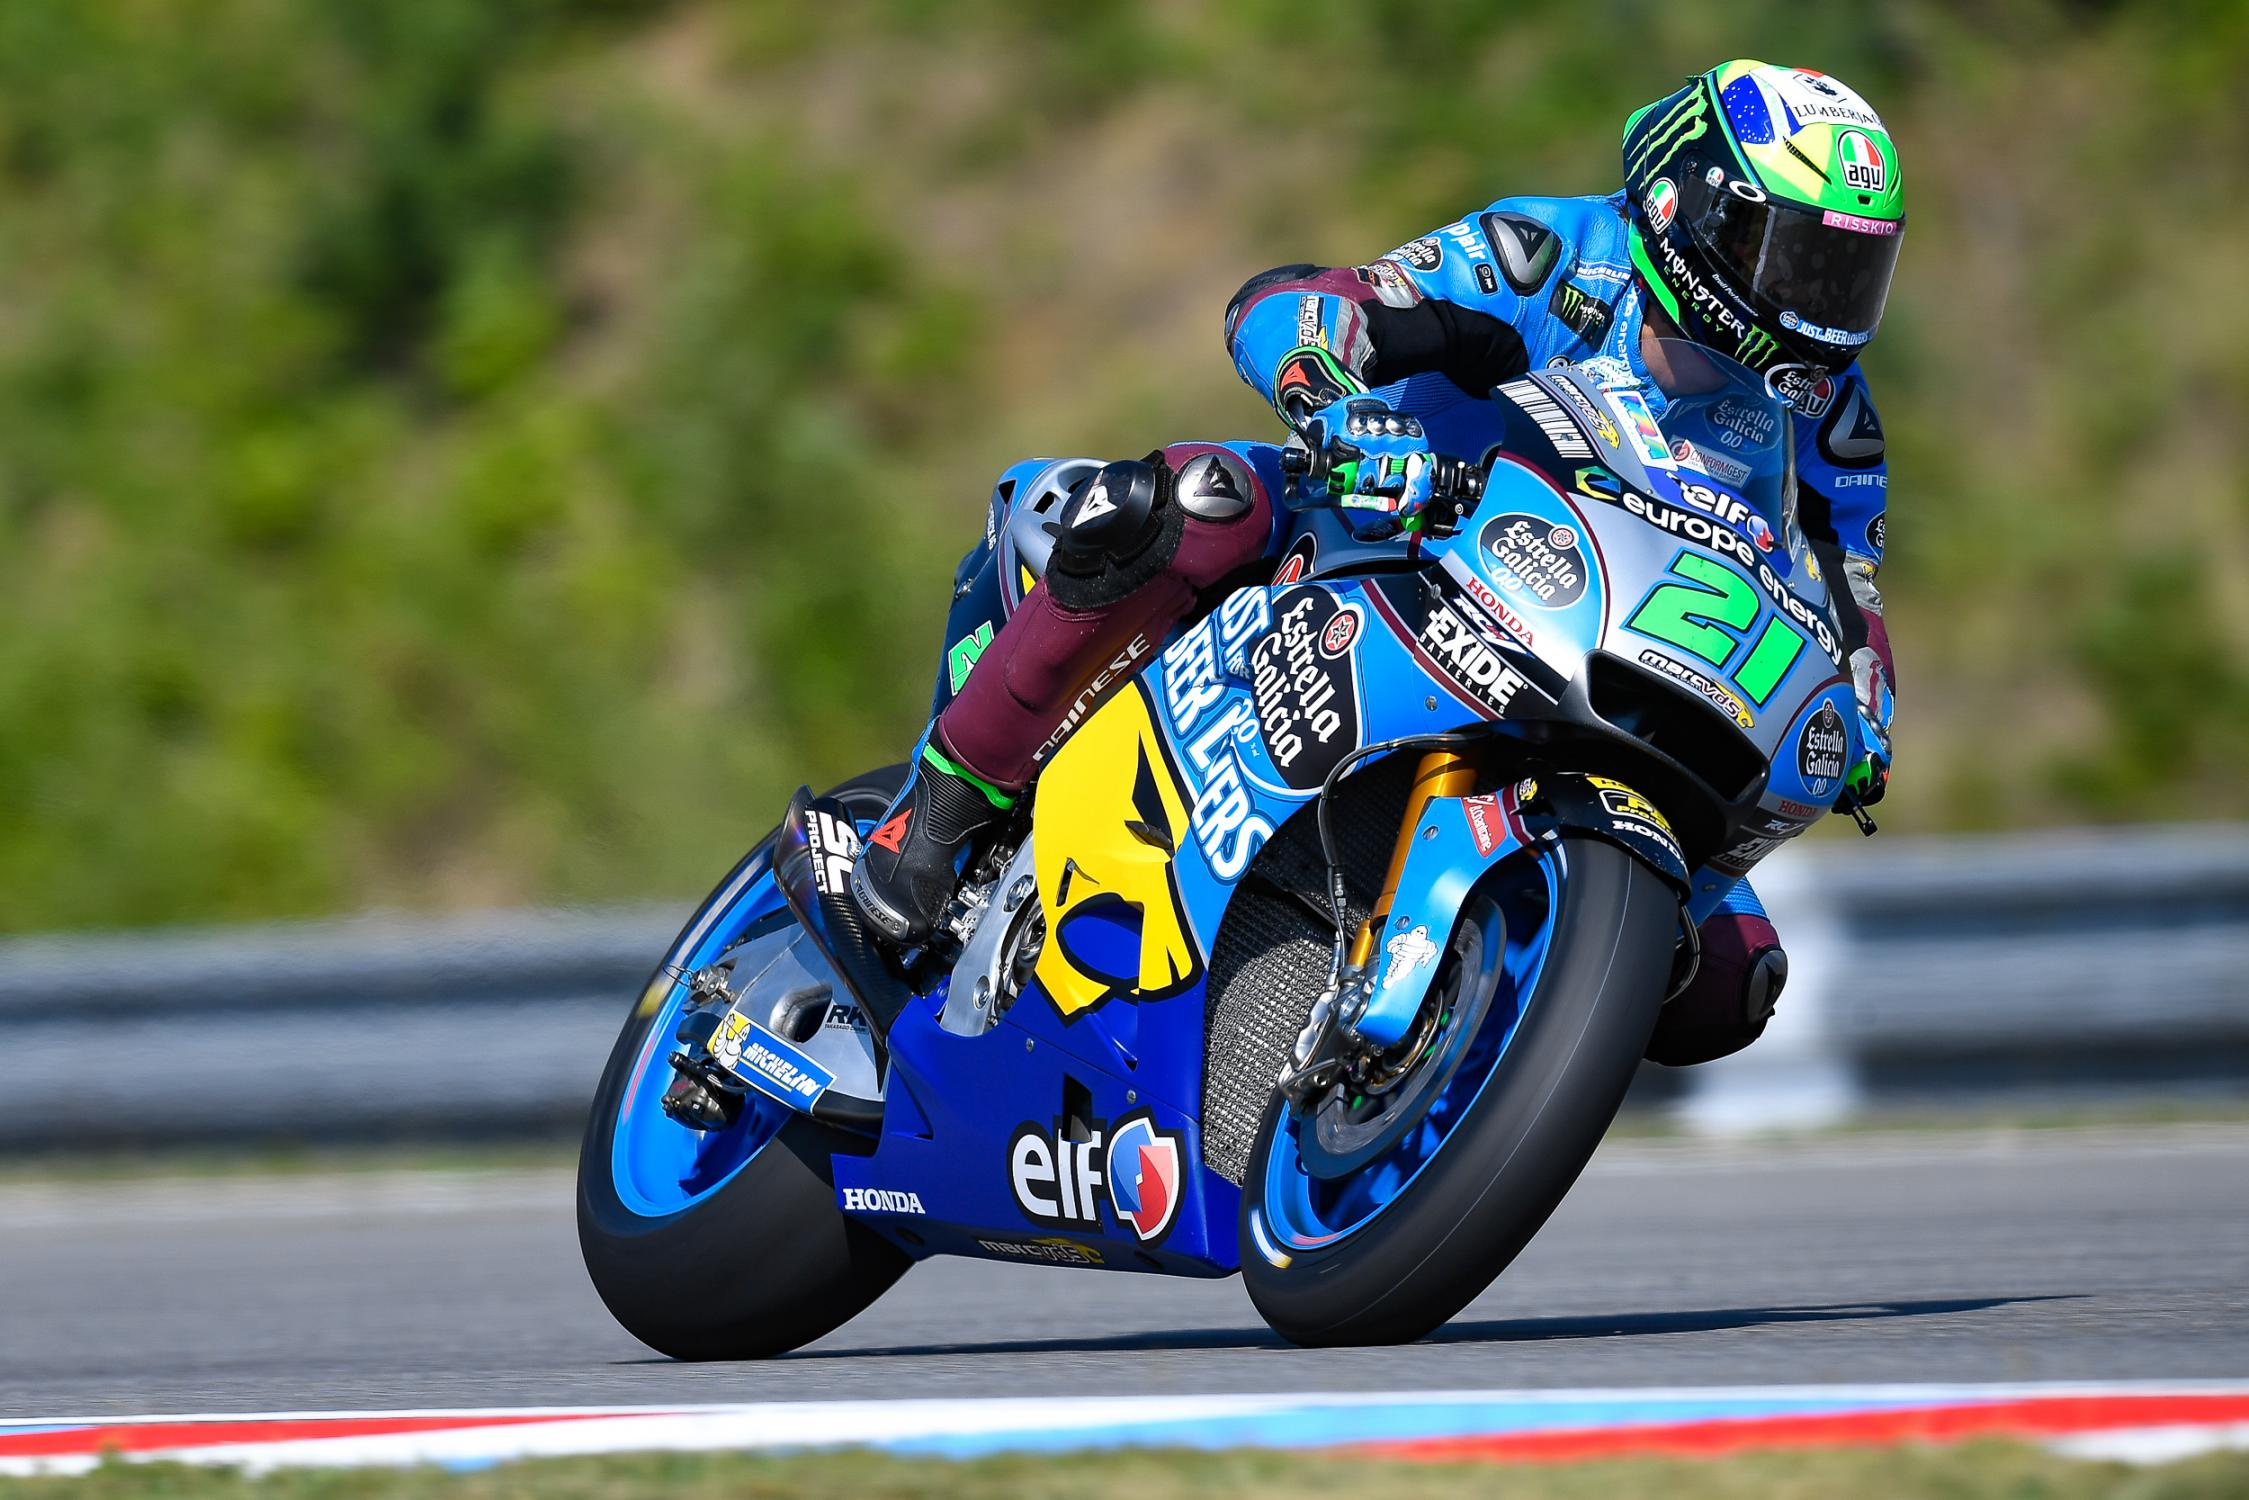 21-franco-morbidelli-ita_ds51708.gallery_full_top_fullscreen.jpg